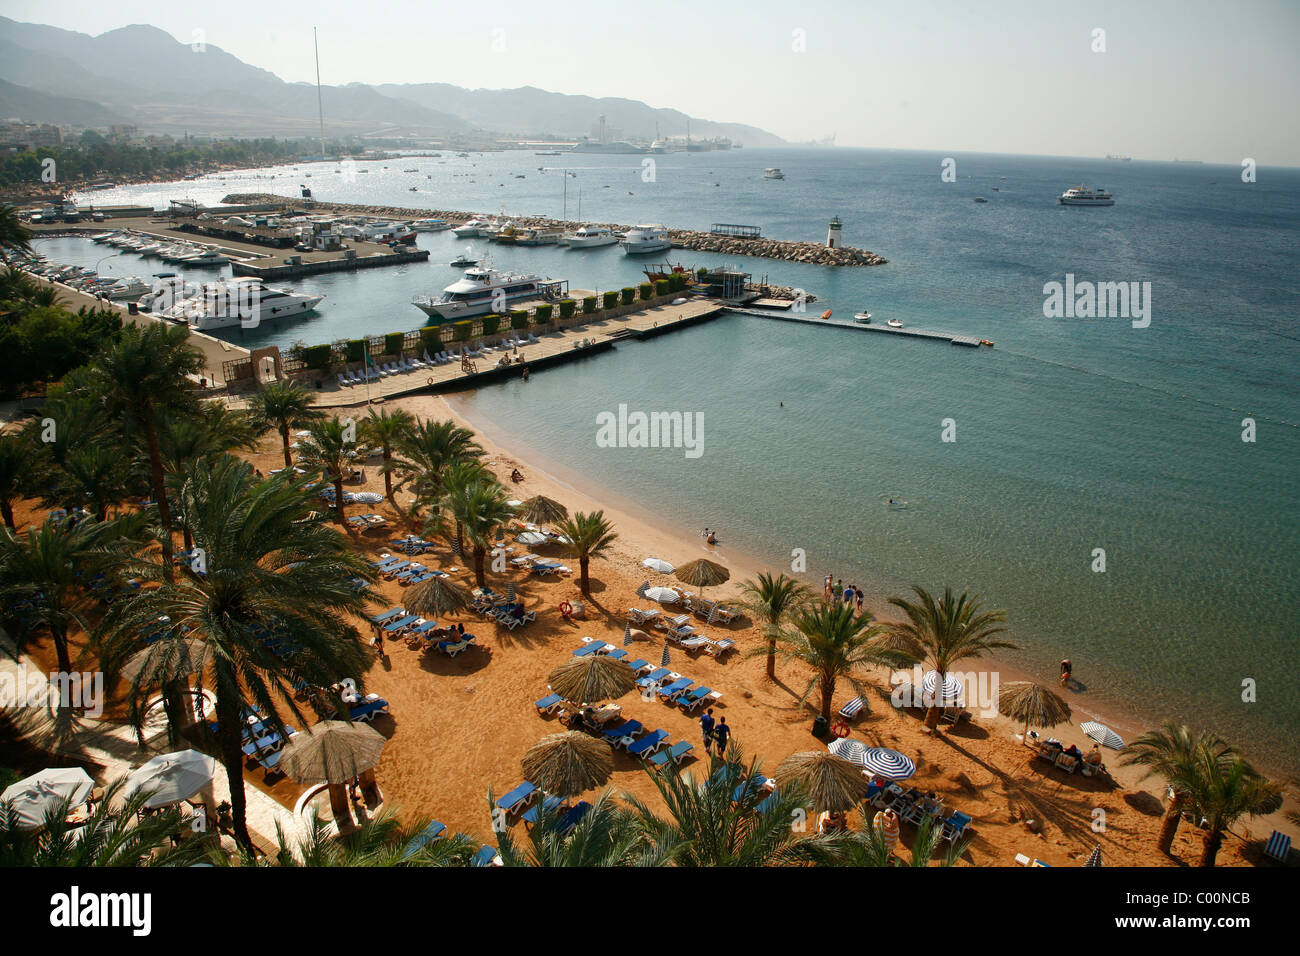 View overthe Beaches of Aqaba, Jordan. - Stock Image